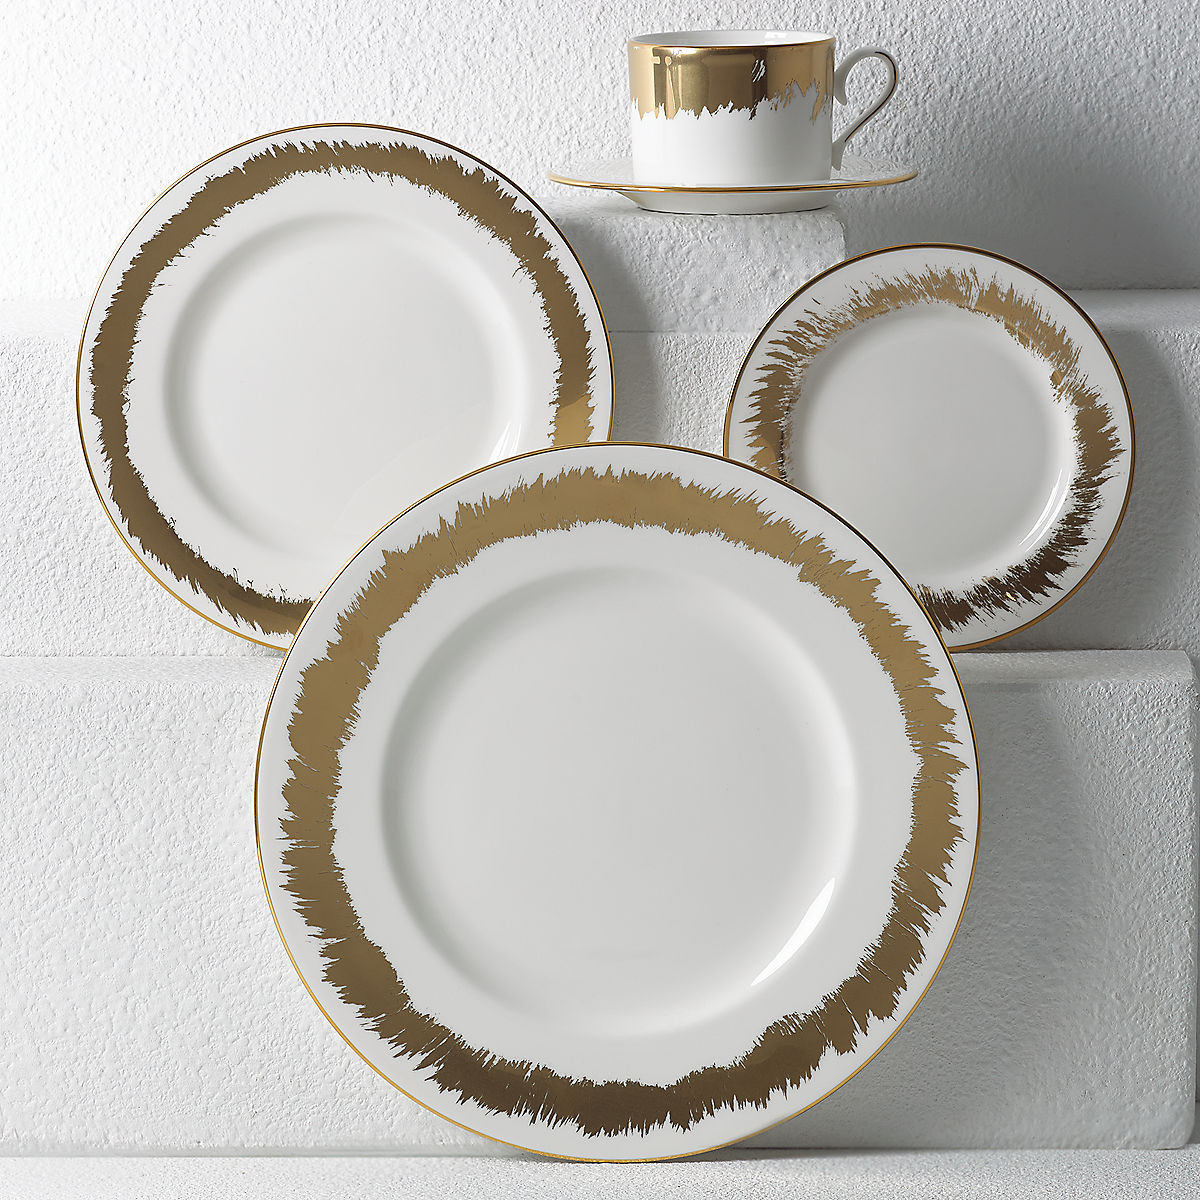 "lenox china vases discontinued of casual radiancea""¢ 5 pc place setting new dinnerware with regard to casual radiance8482 5 pc place setting 869048 whr"